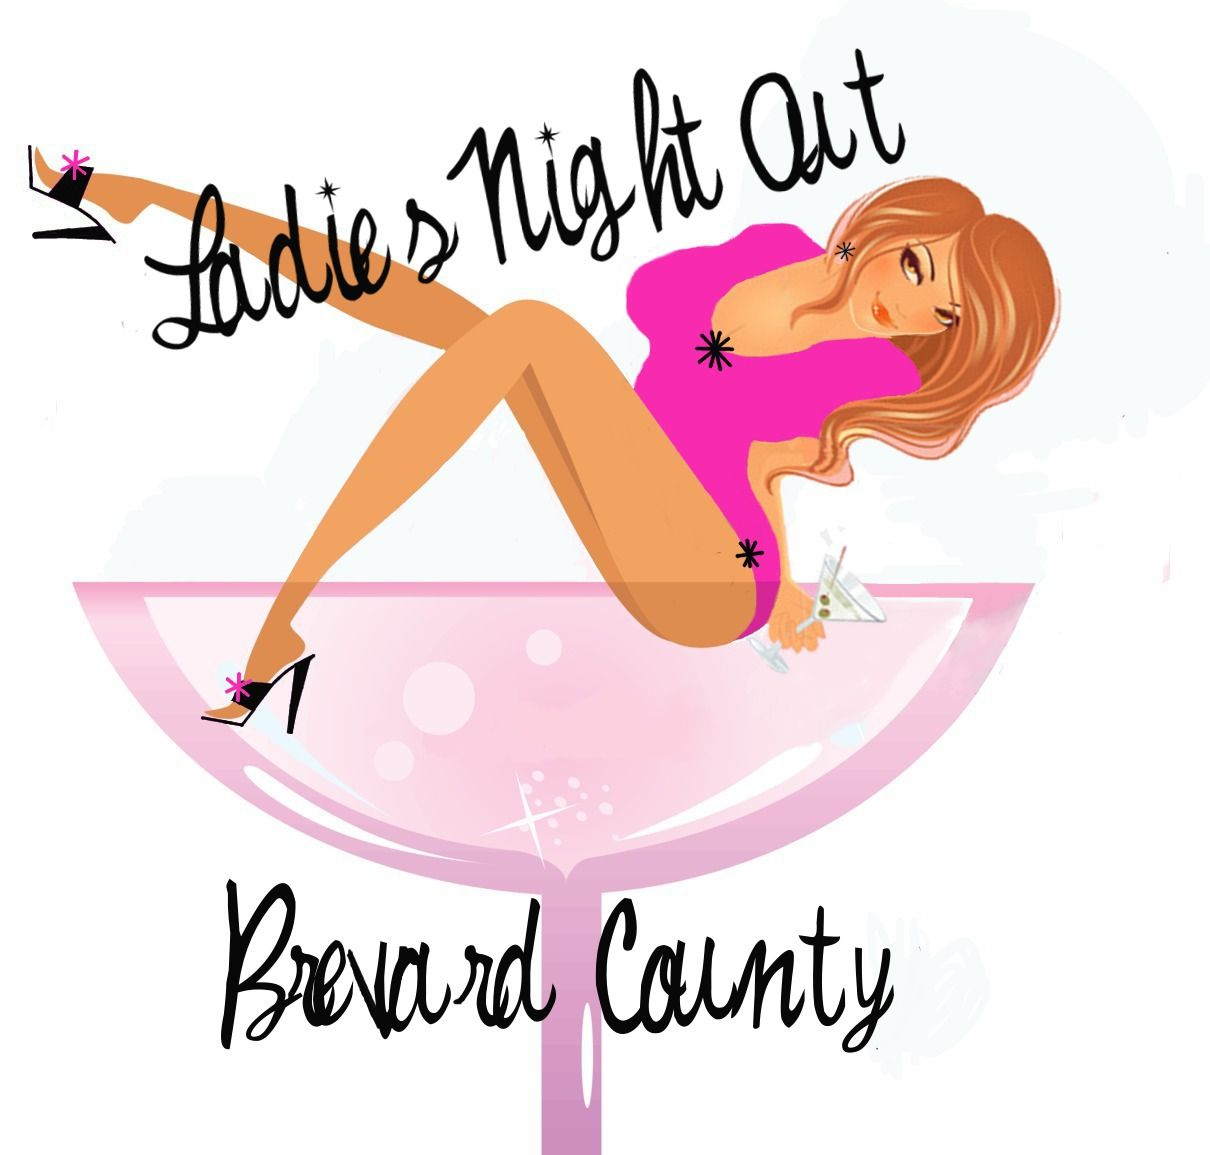 Gallery For > Church Ladies Night Out Clipart